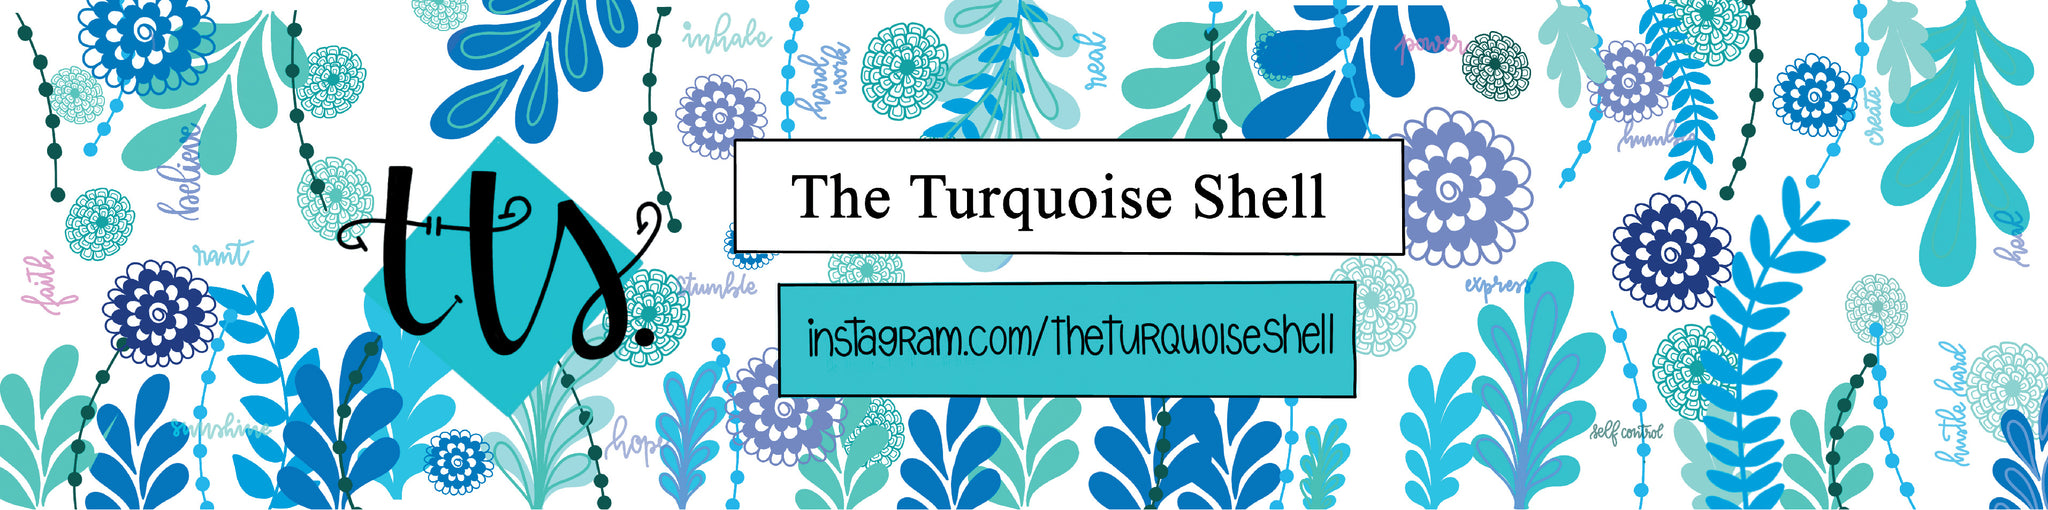 the turqiouse shell instanote artist collection